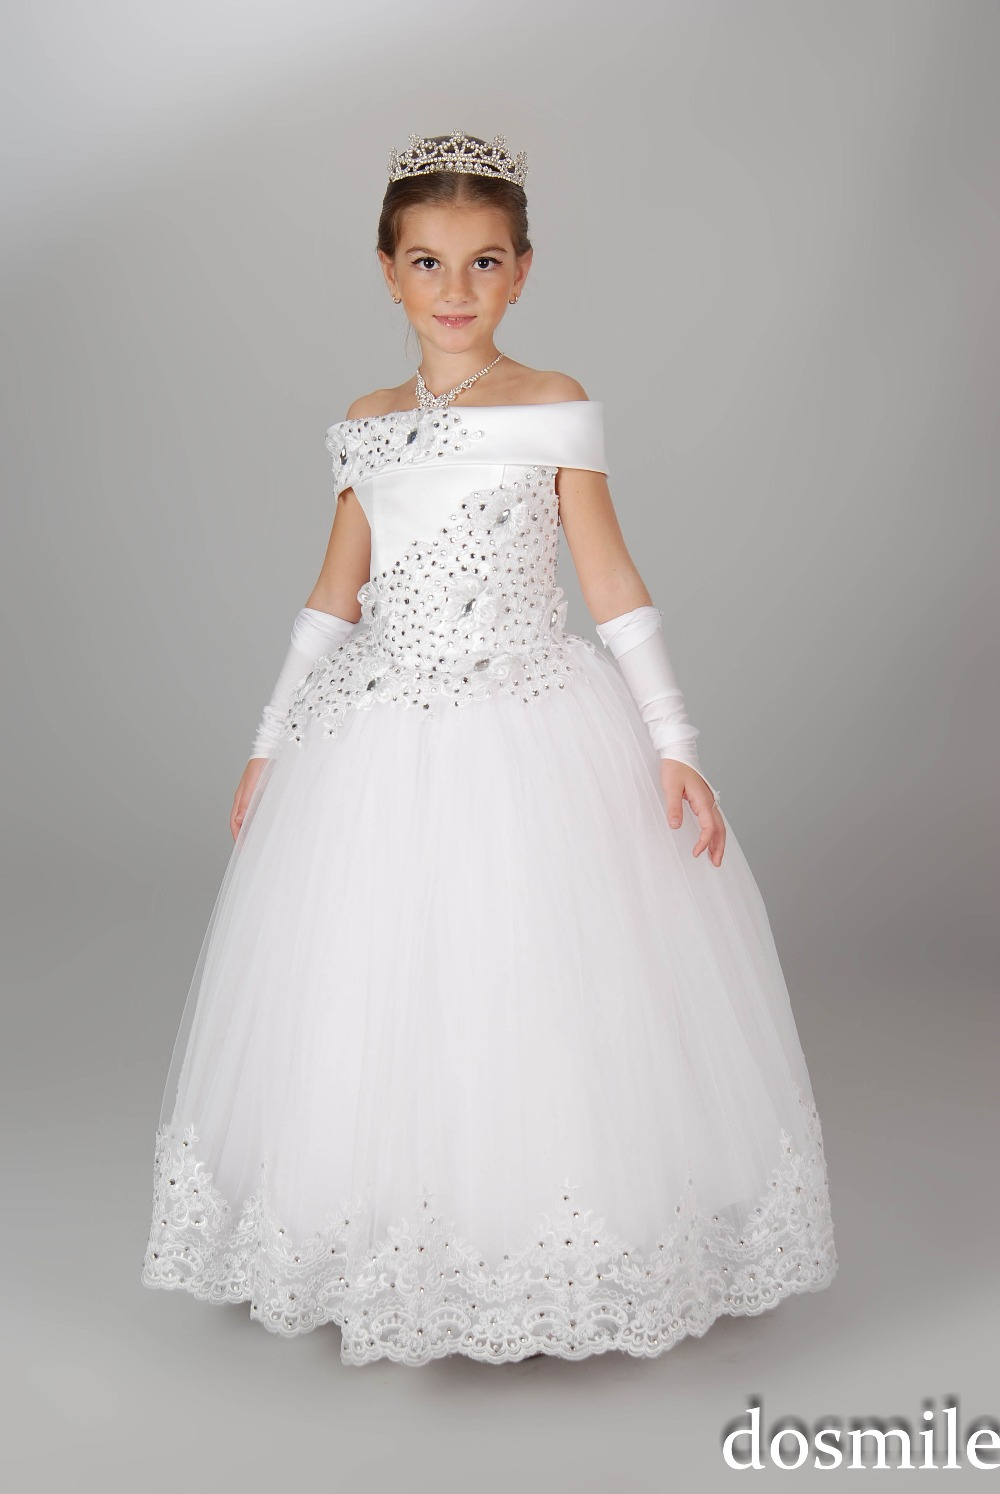 New Arrival White/Ivory Princess Lace Flower Girl Dresses with Crystals beading Ball Gowns for wedding party girls pageant dress